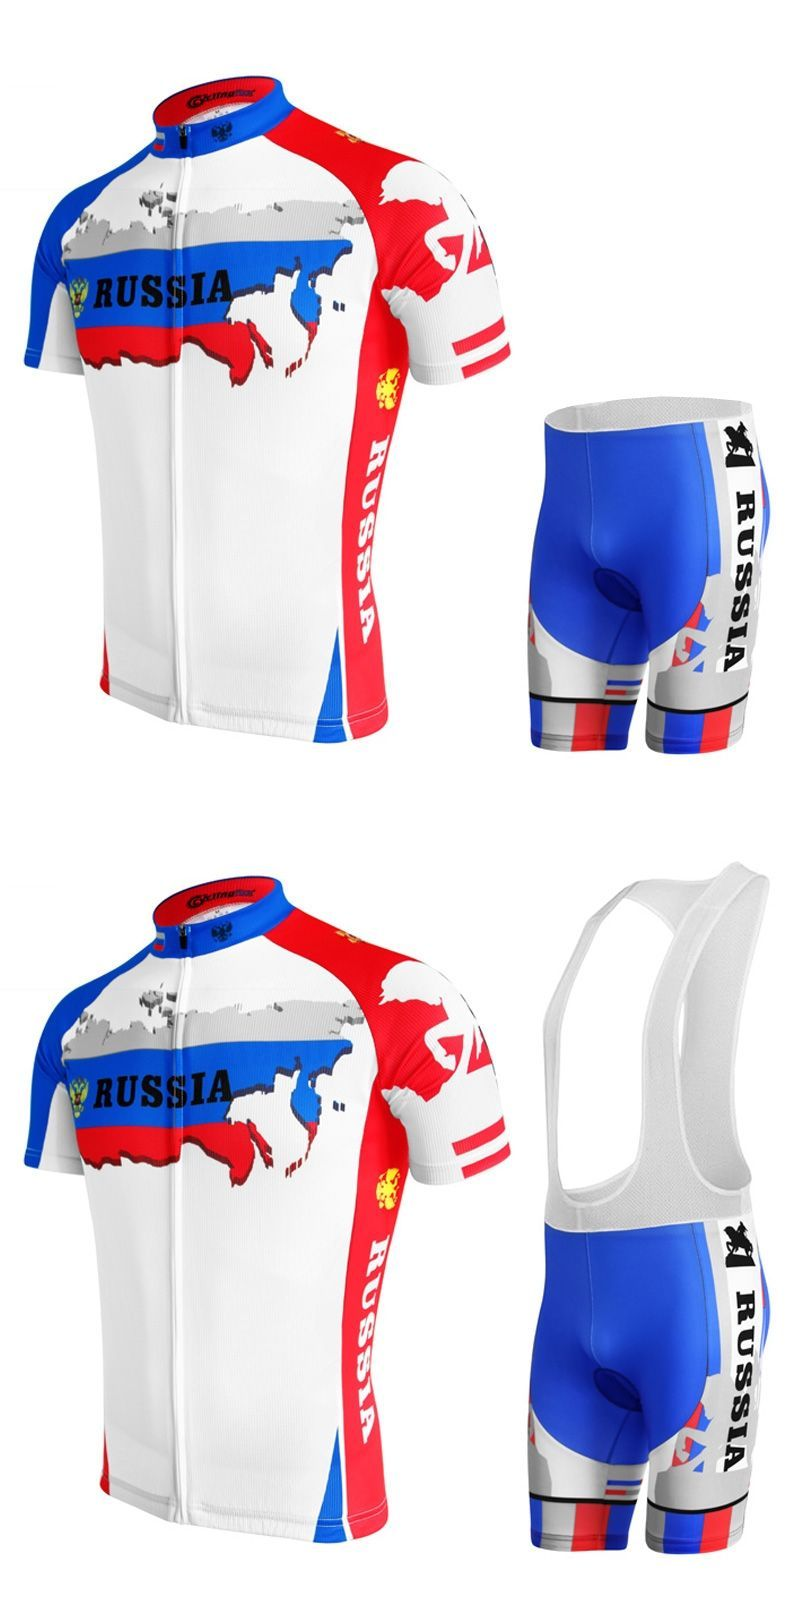 2017 New cube cycling jersey Set men road bike bicycle clothing wear gel  pad Summer Breathable russia team Professional match bcba3205e